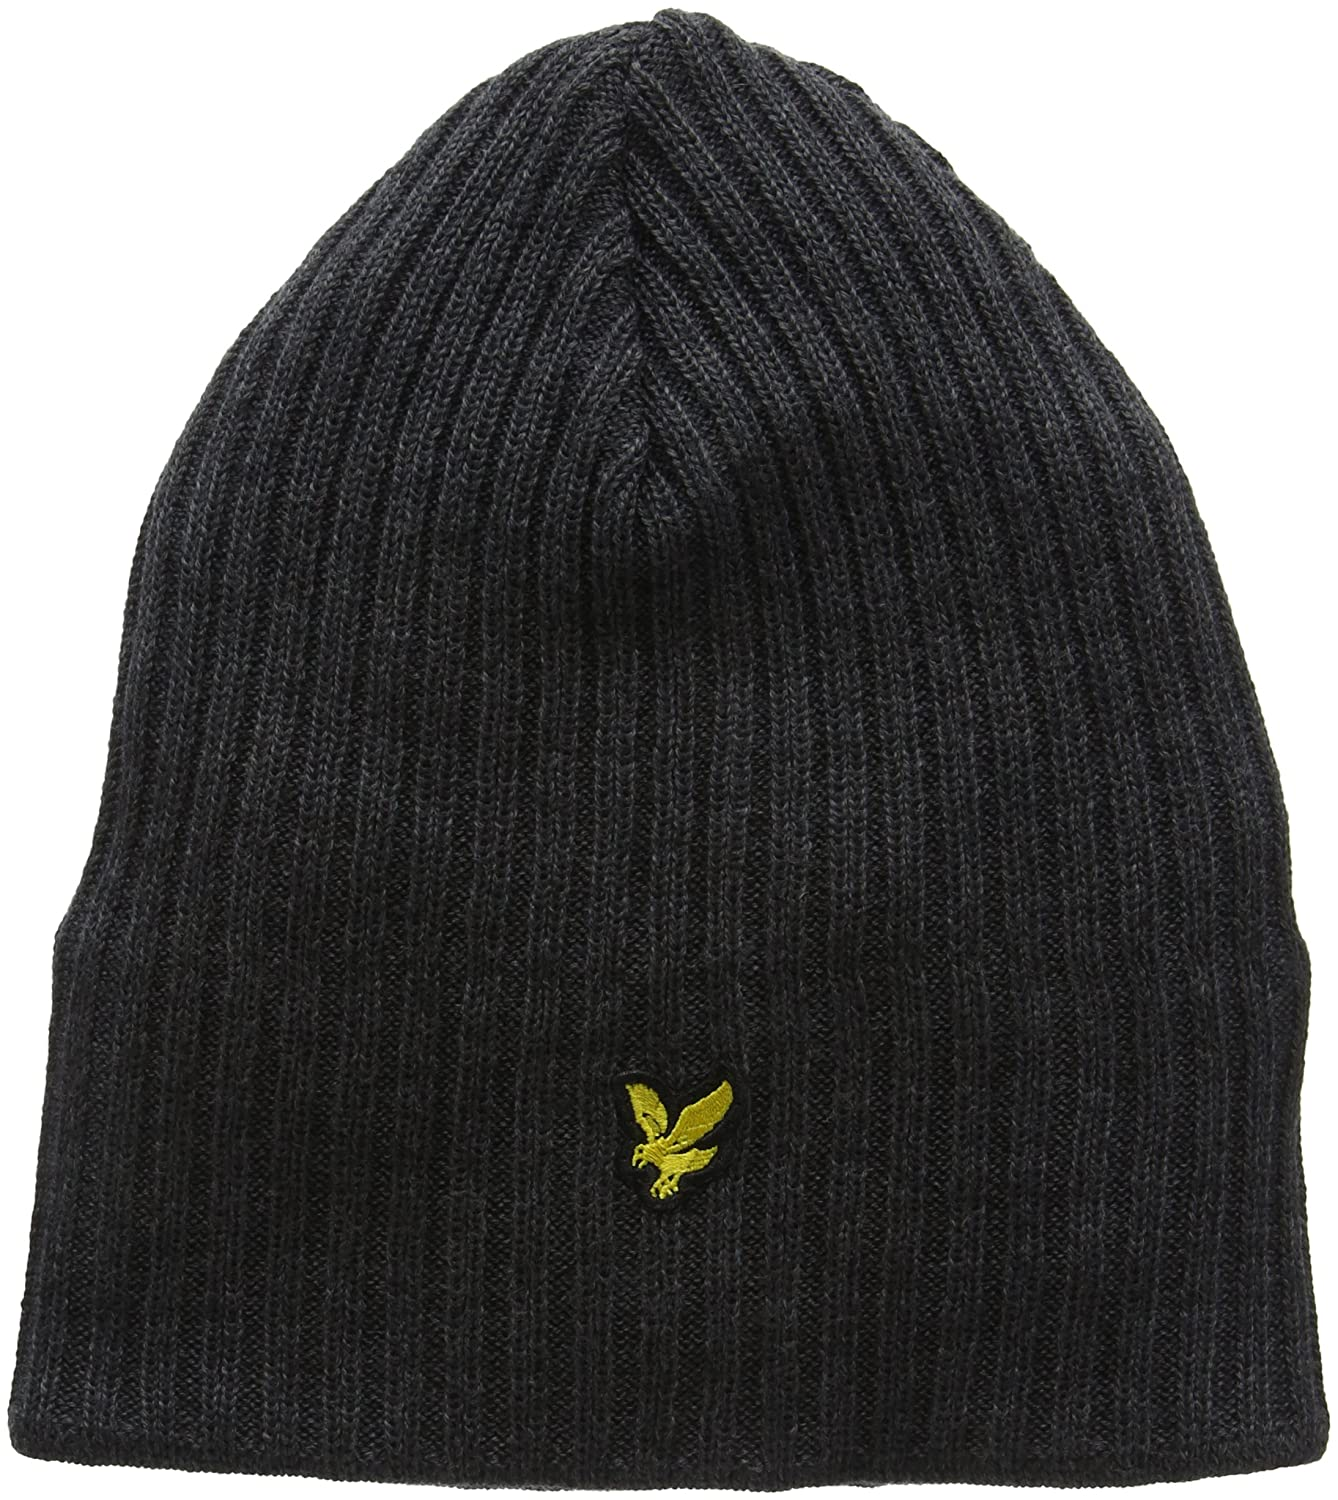 Lyle /& Scott Mens Knitted Ribbed Beanie